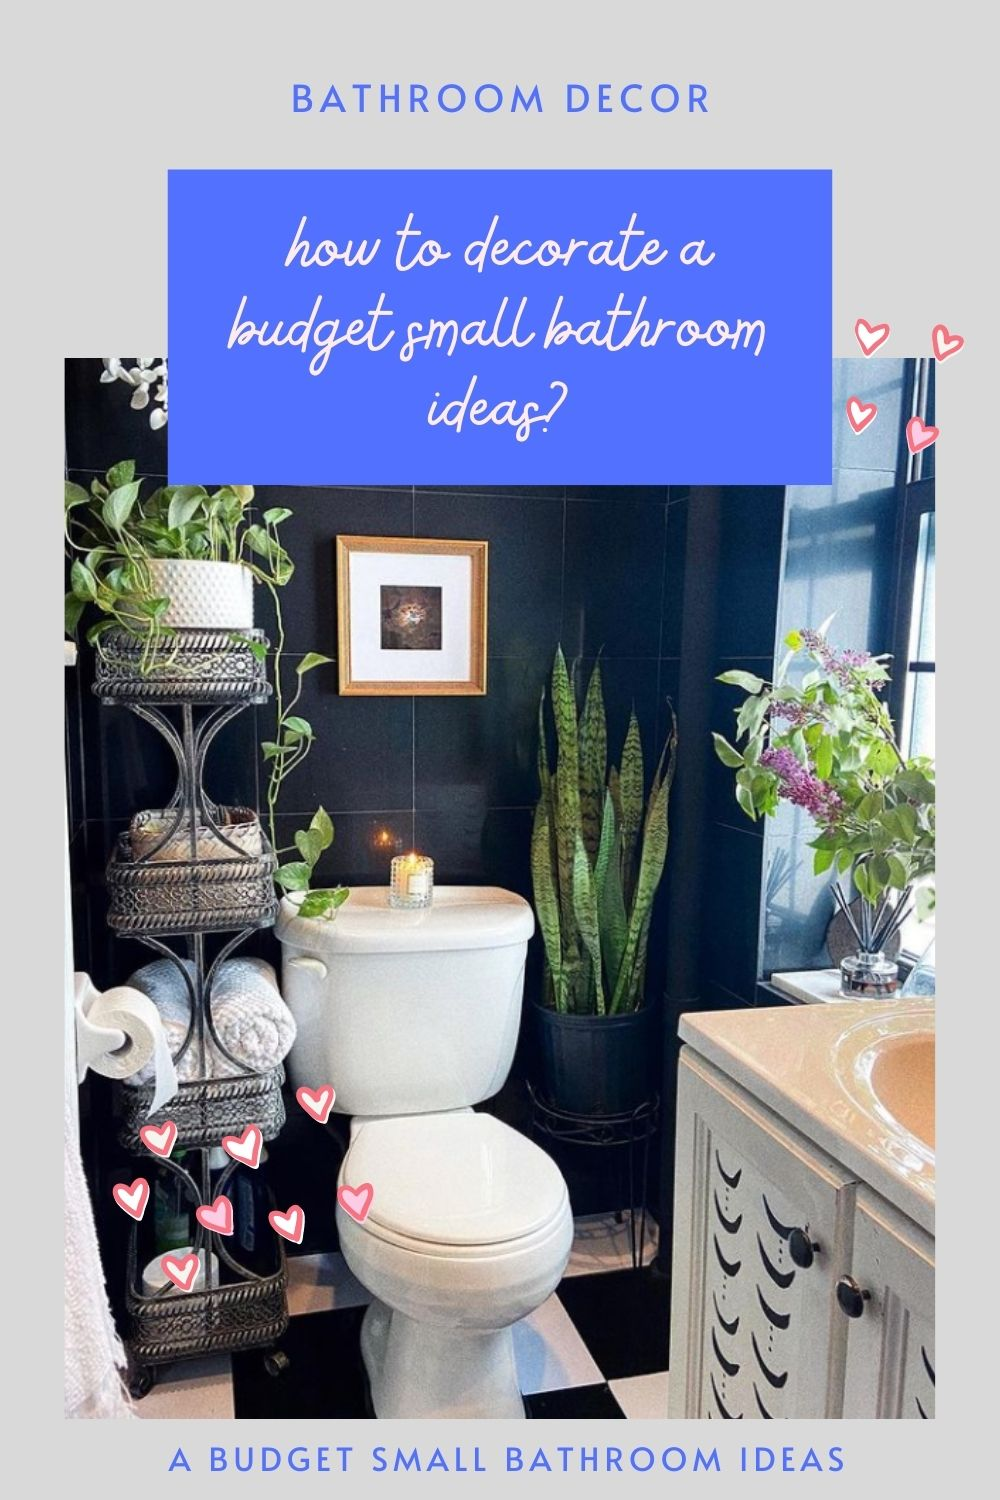 How to Decorate A Budget Small Bathroom Ideas?